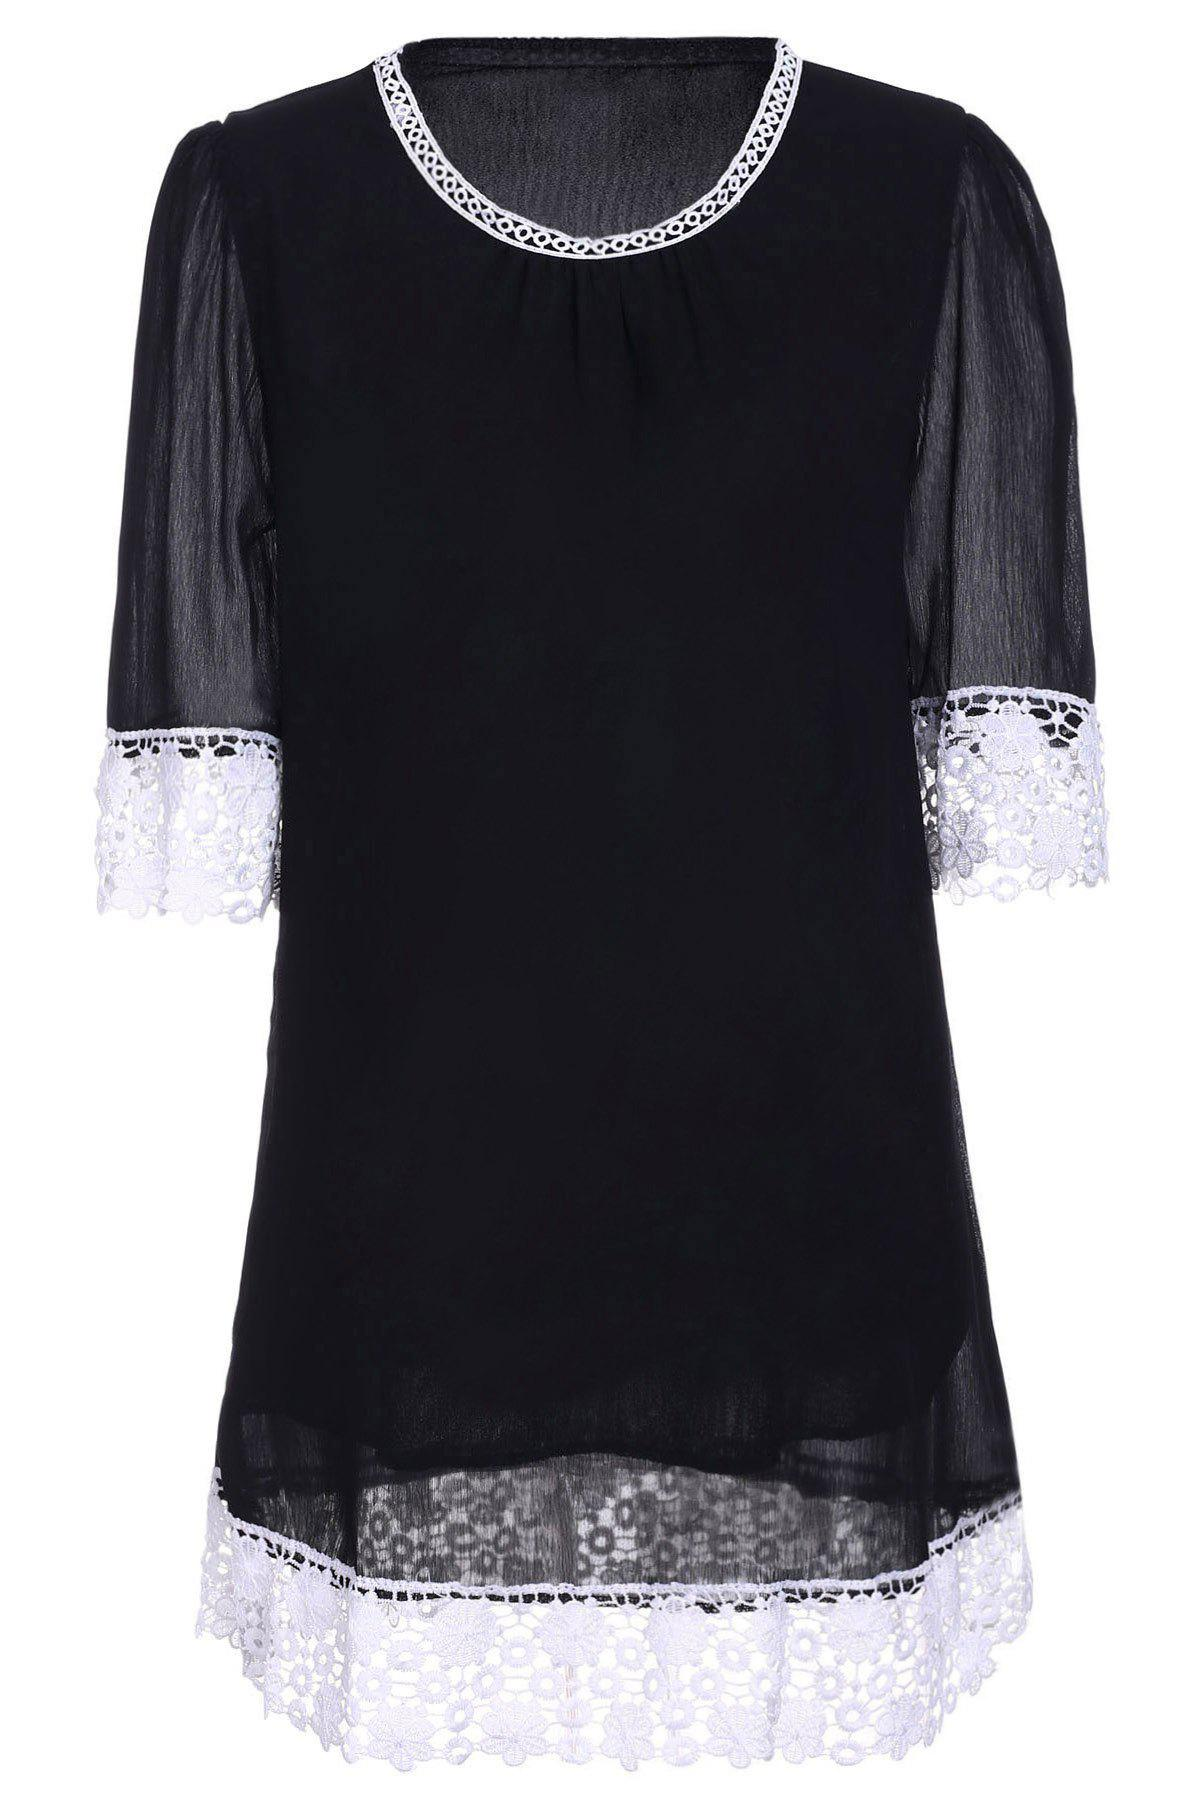 Casual Lace Panel Mini Shift Dress - BLACK L